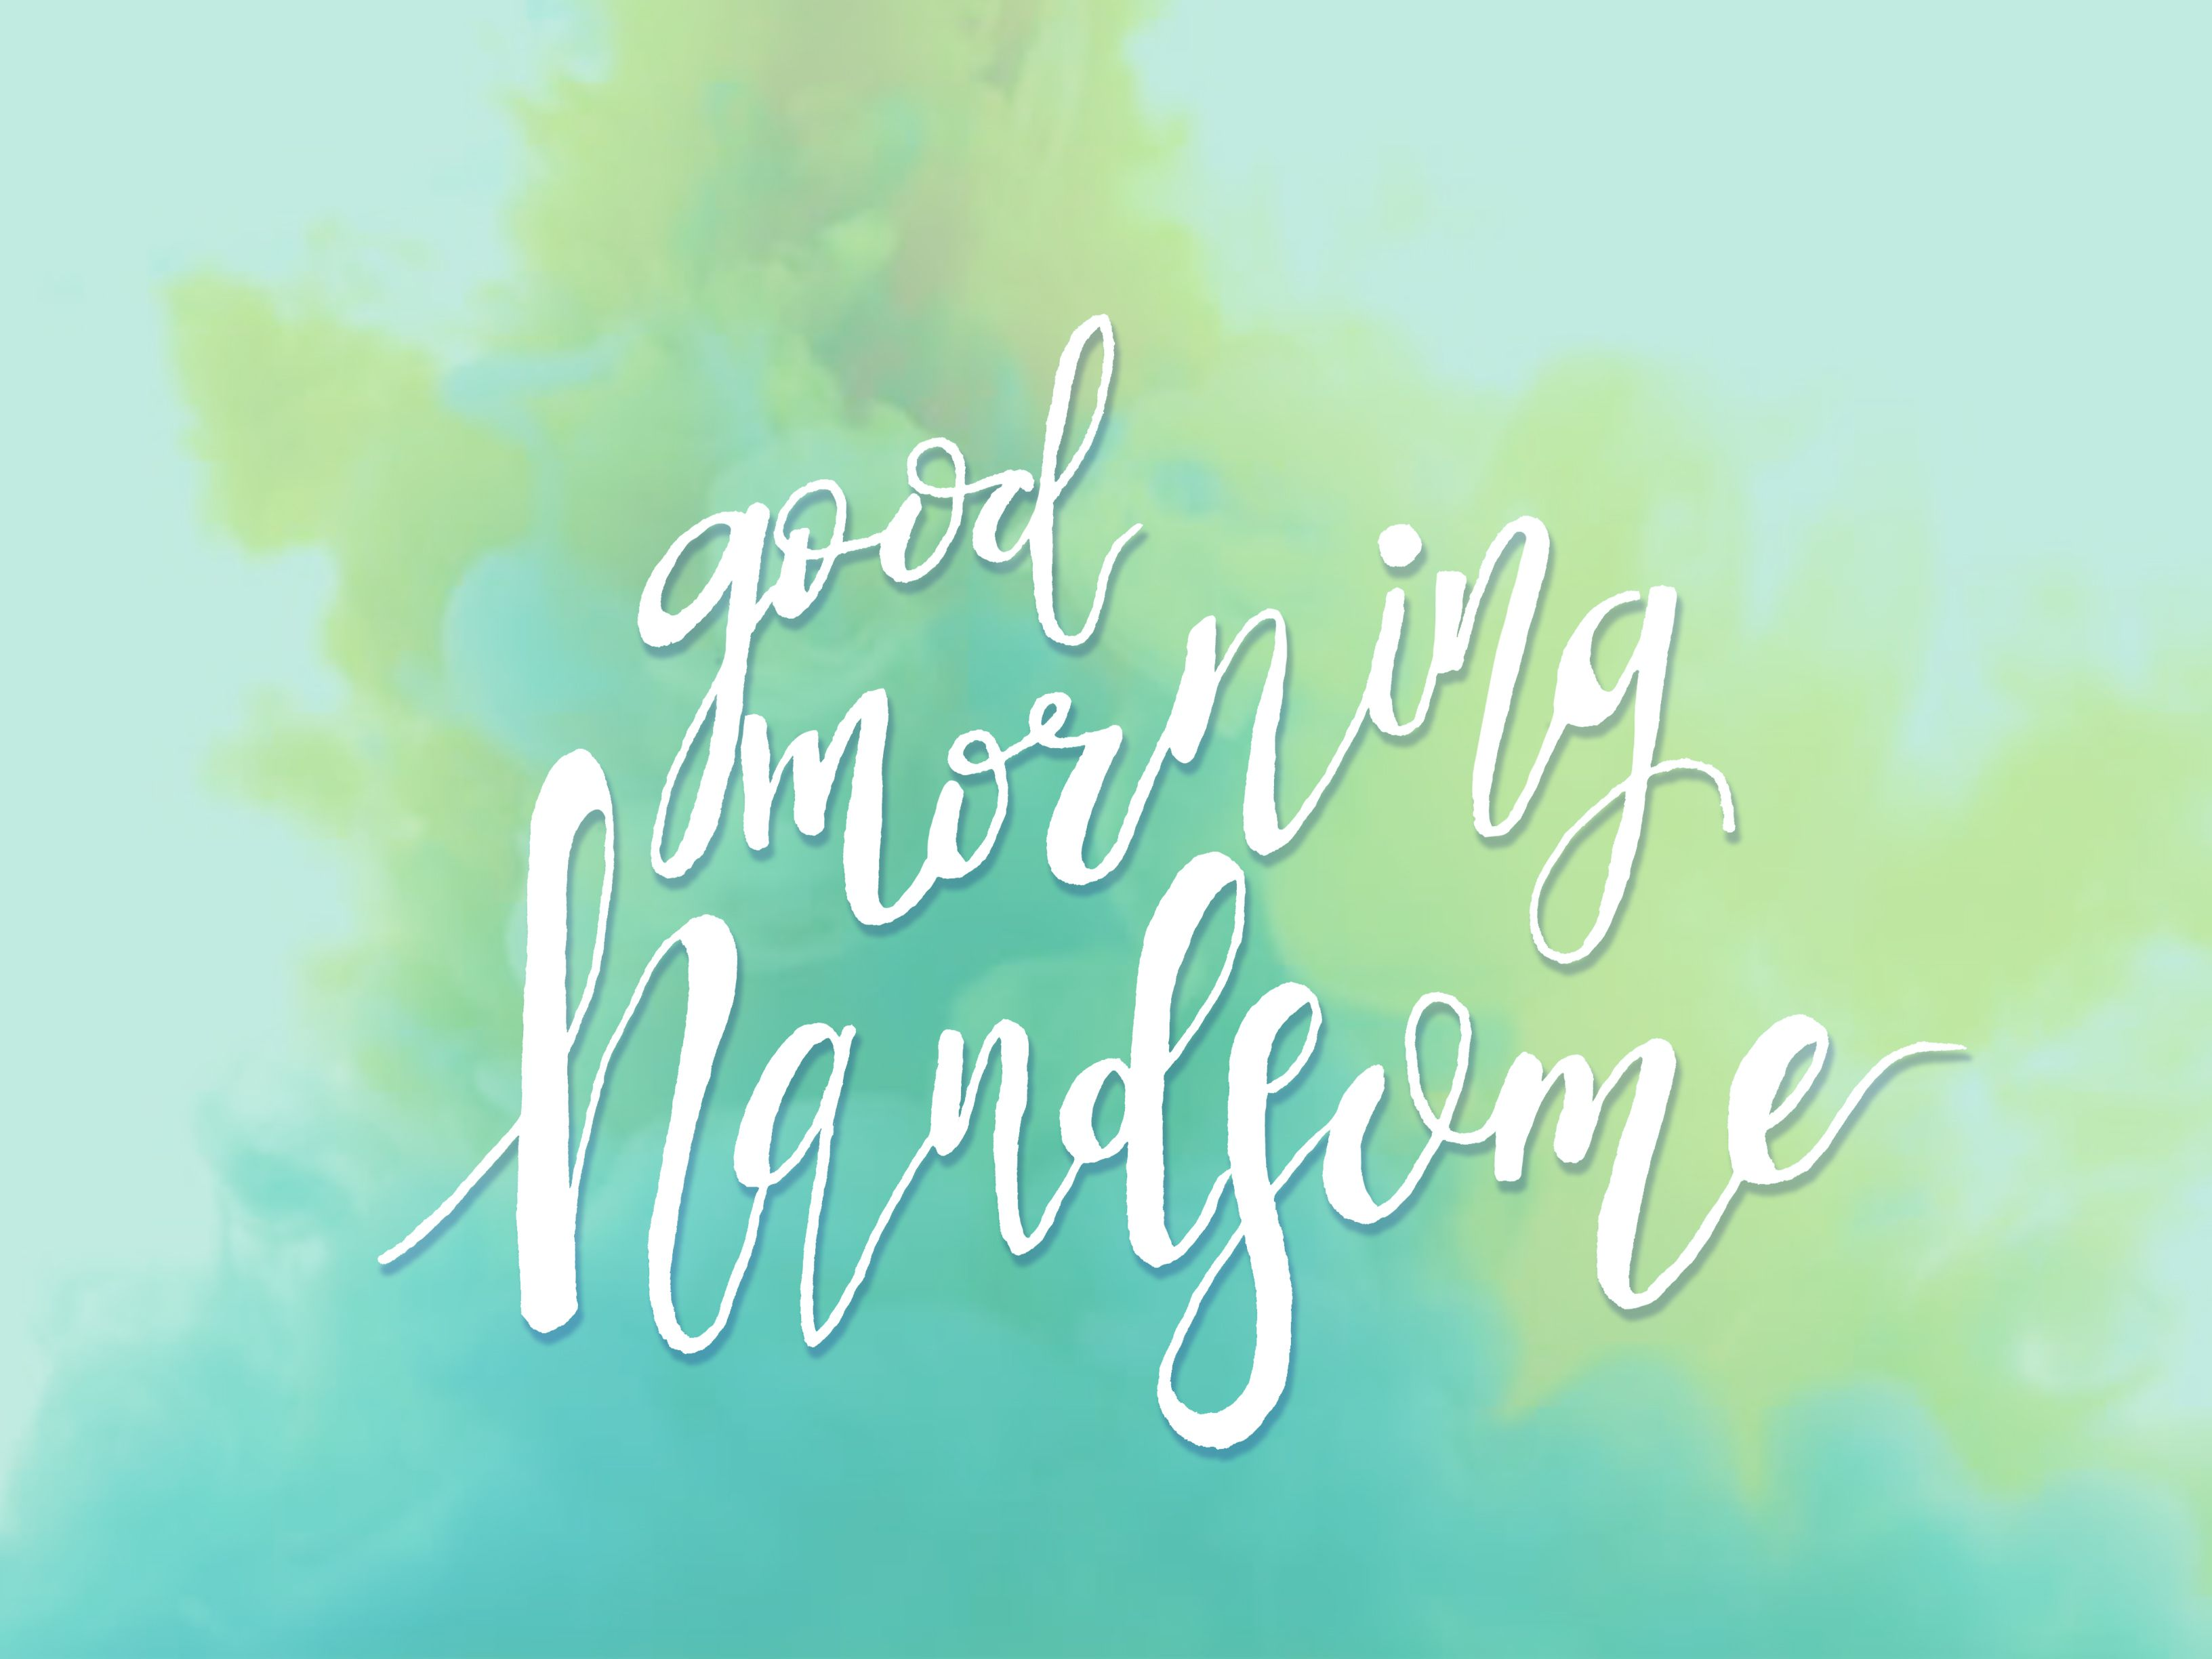 Good Morning Handsome By Maya Corona  Lettering  Type